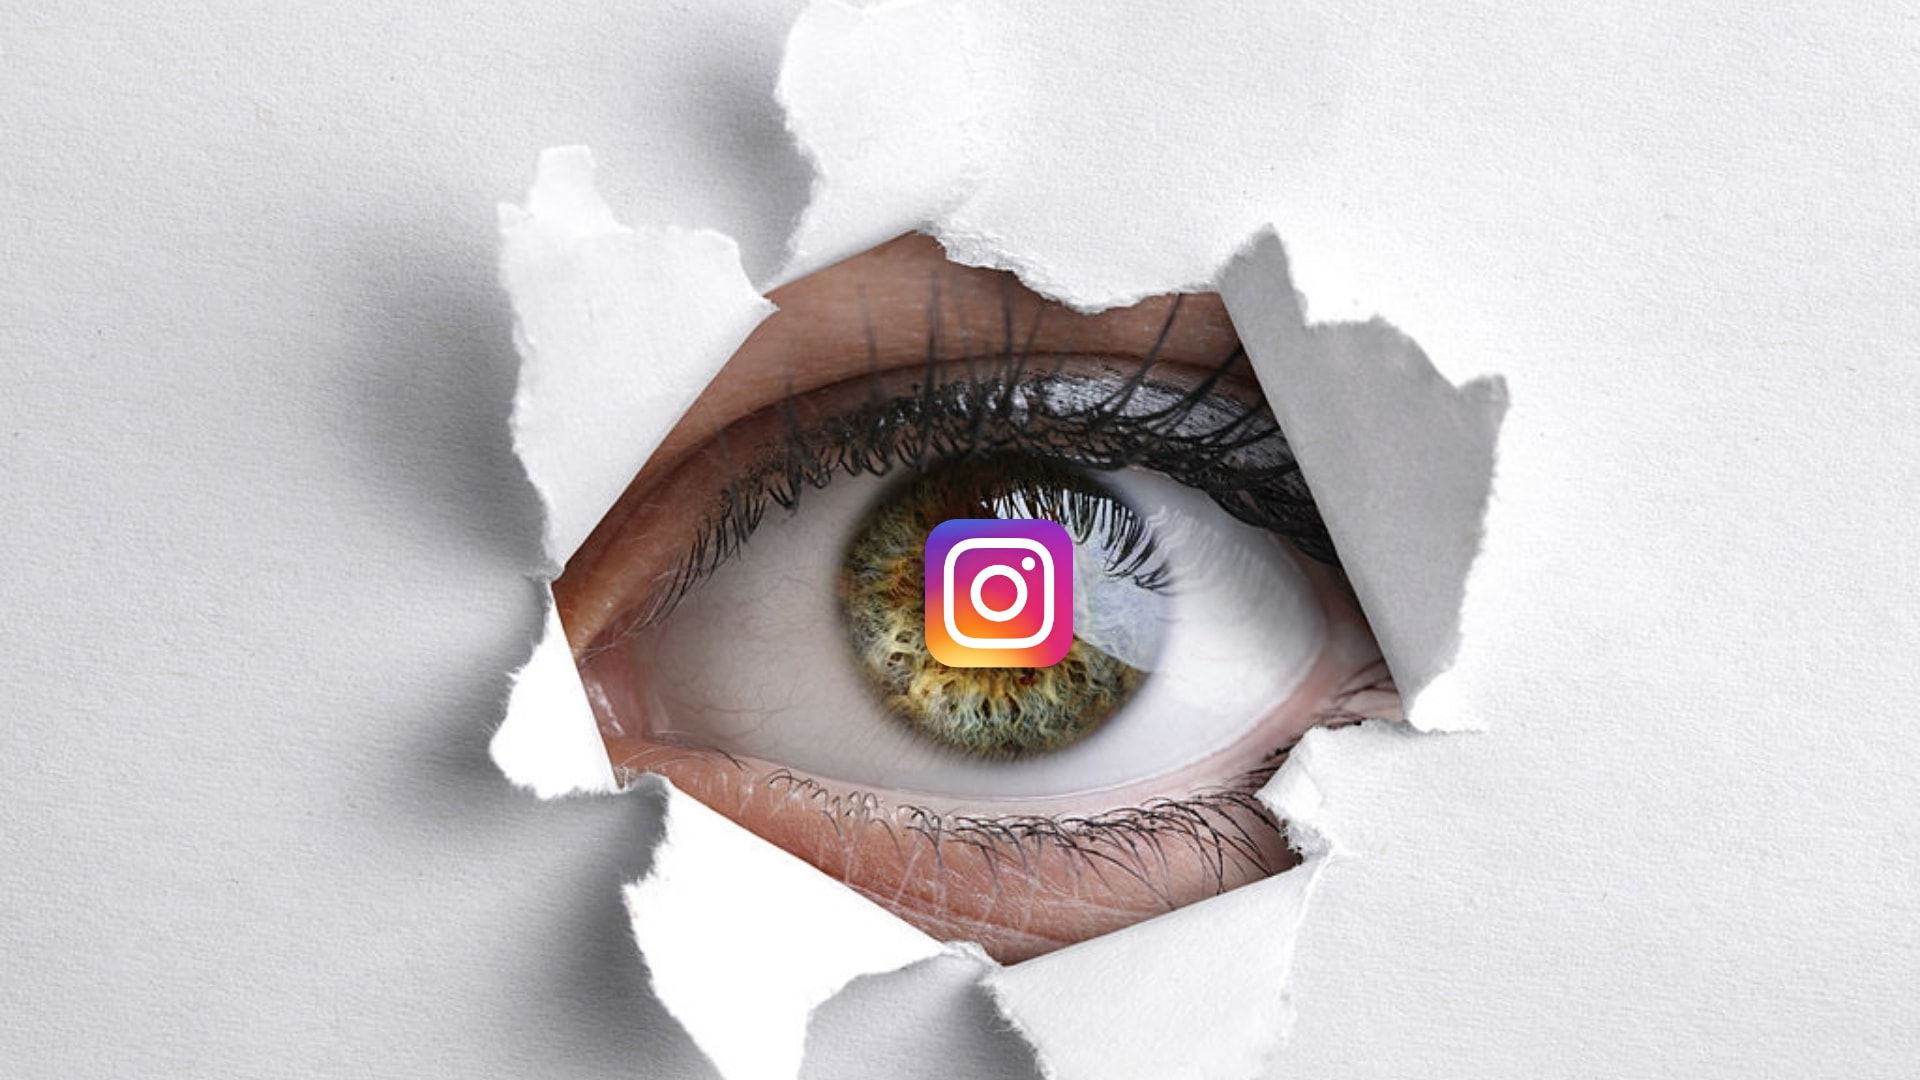 Insta stalker - Instastalker: Solution of Instagram Stalking 2020